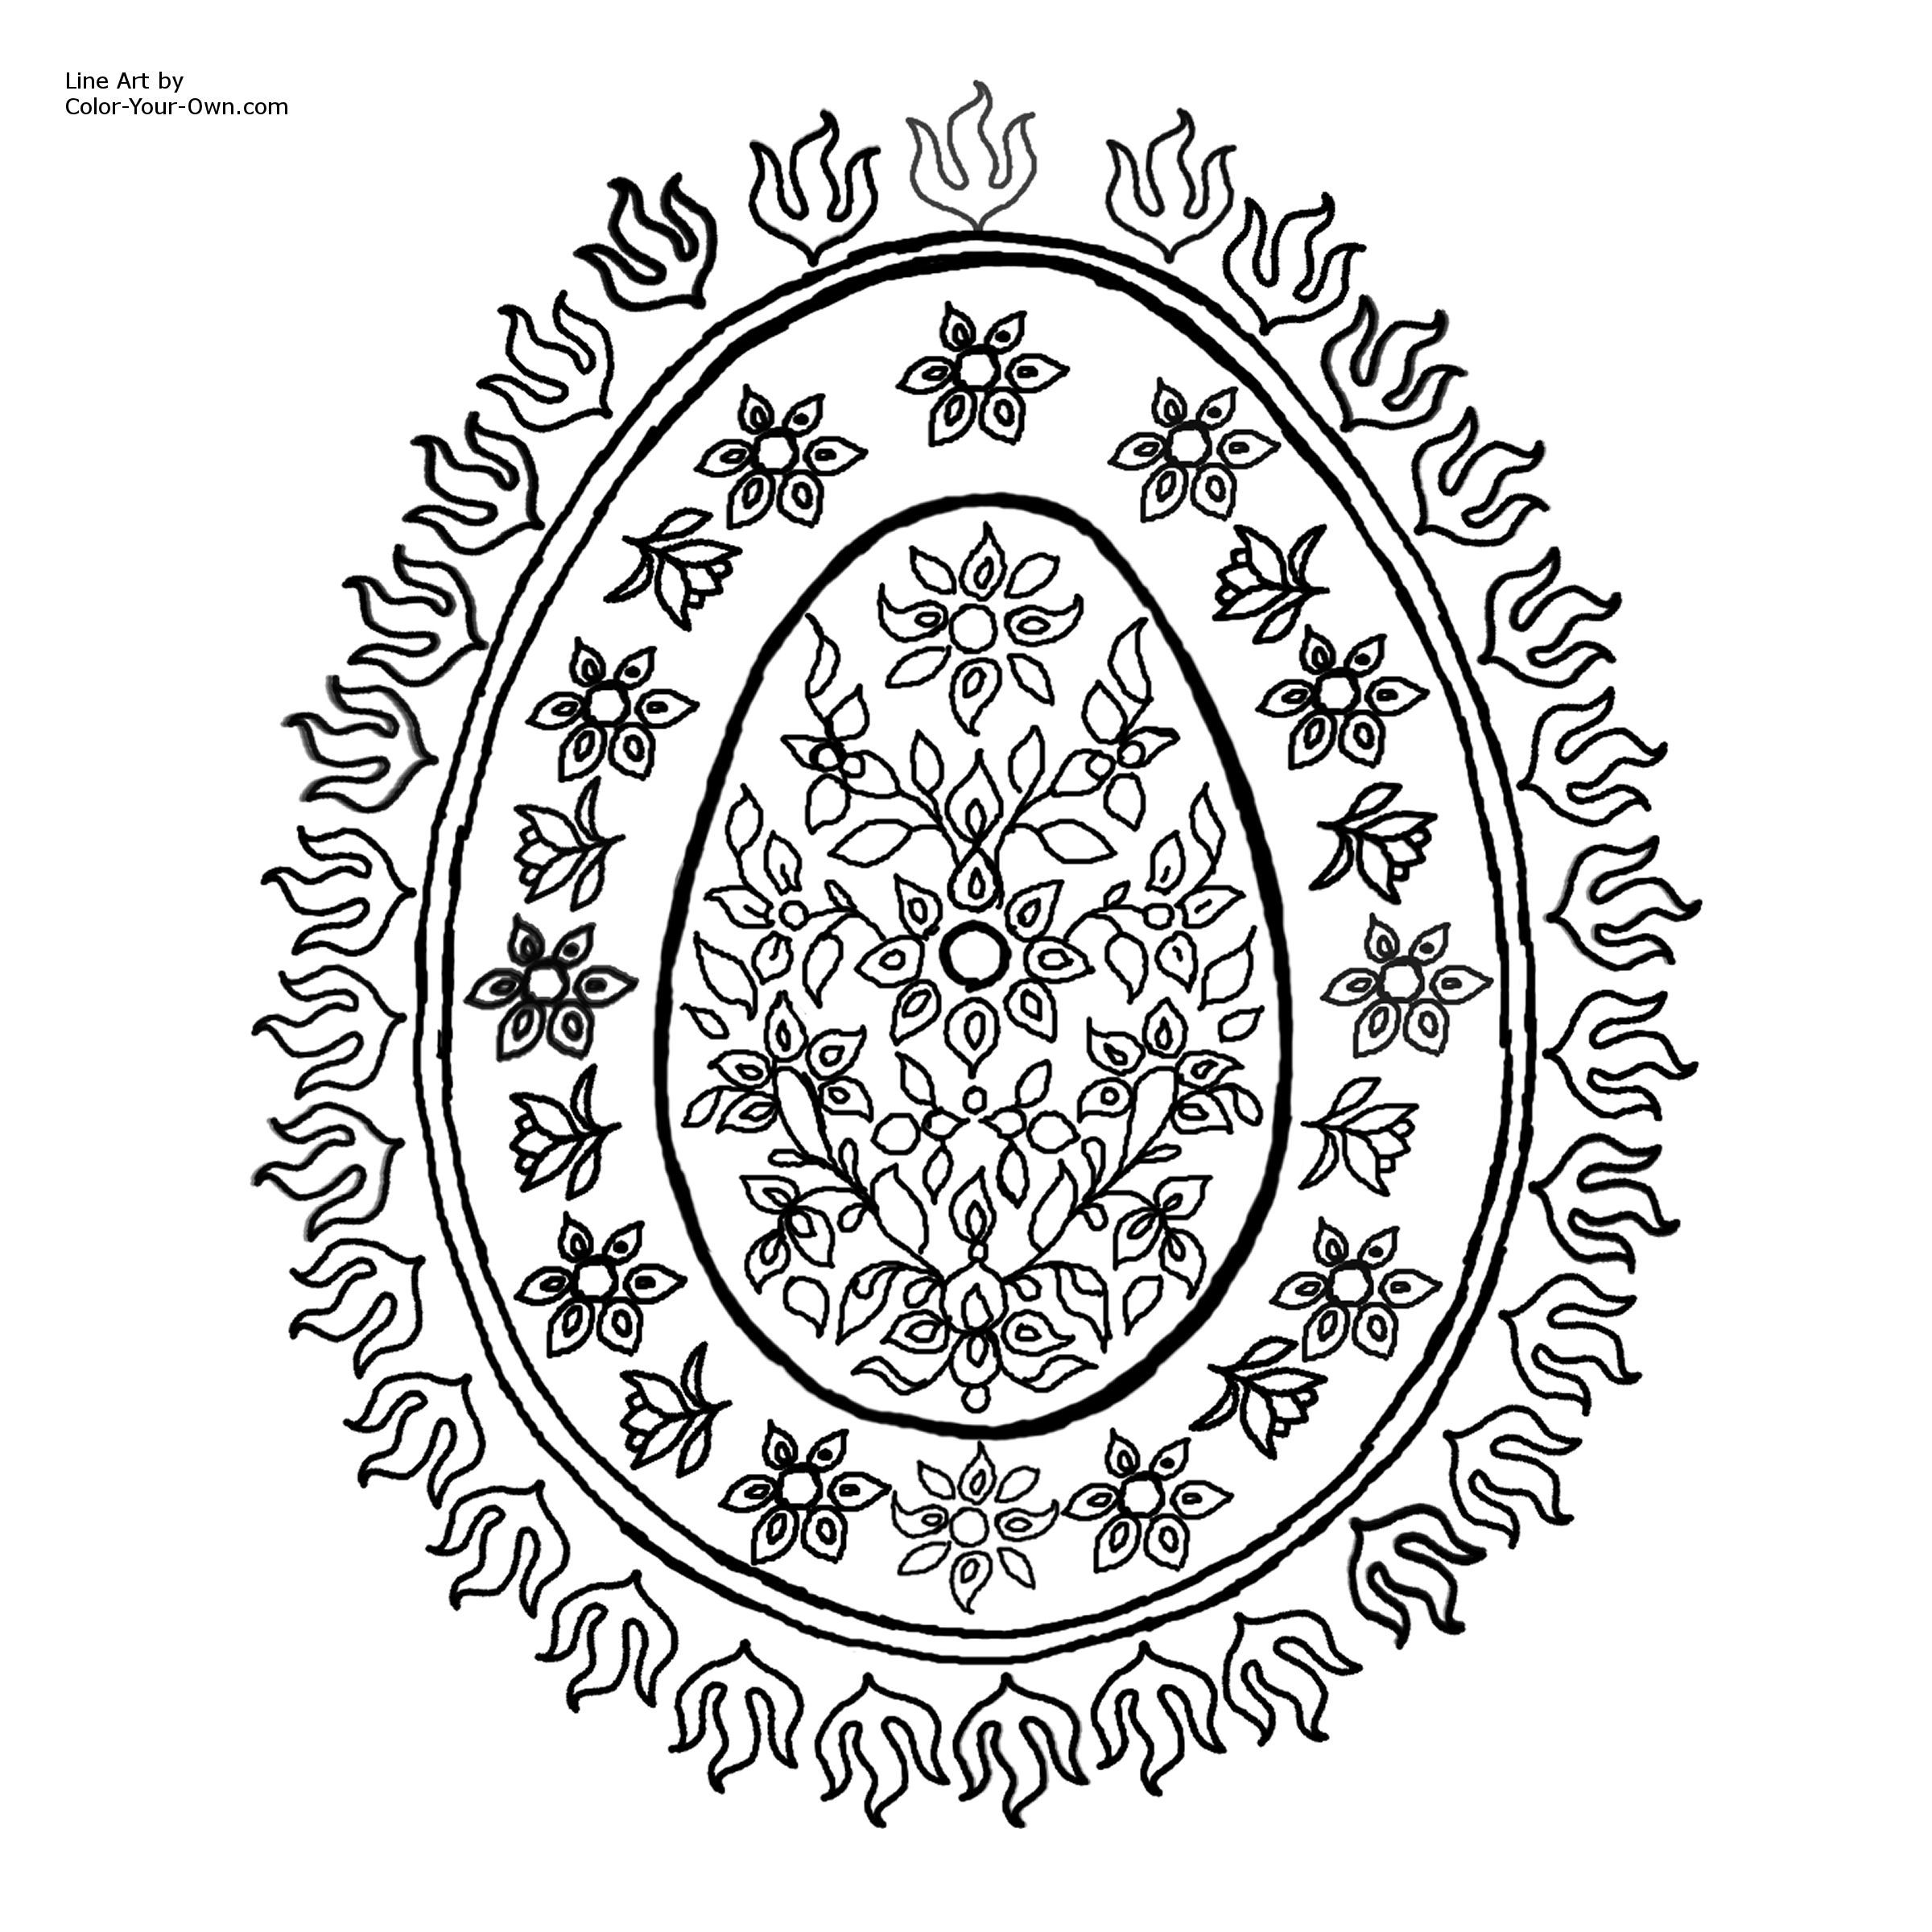 Pattern Coloring Pages | Decorative Egg Pattern with Flowers ...